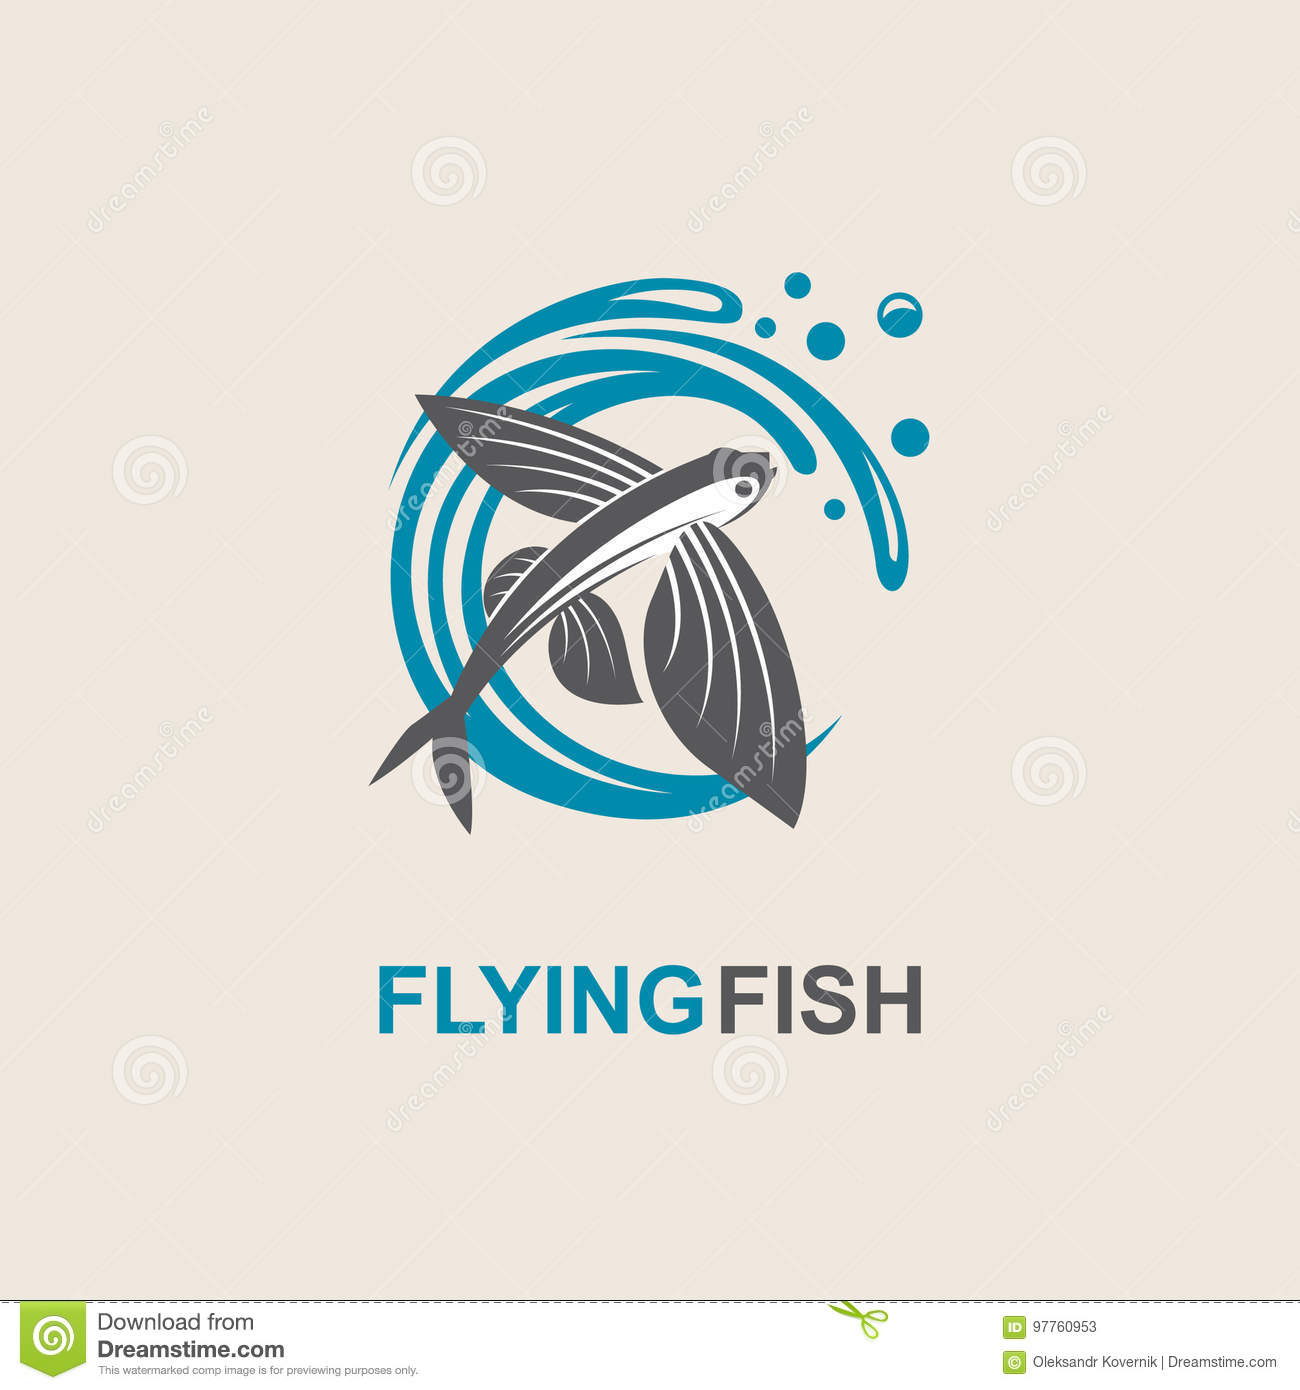 Flying Fish Icon Stock Vector Illustration Of Seafood 97760953